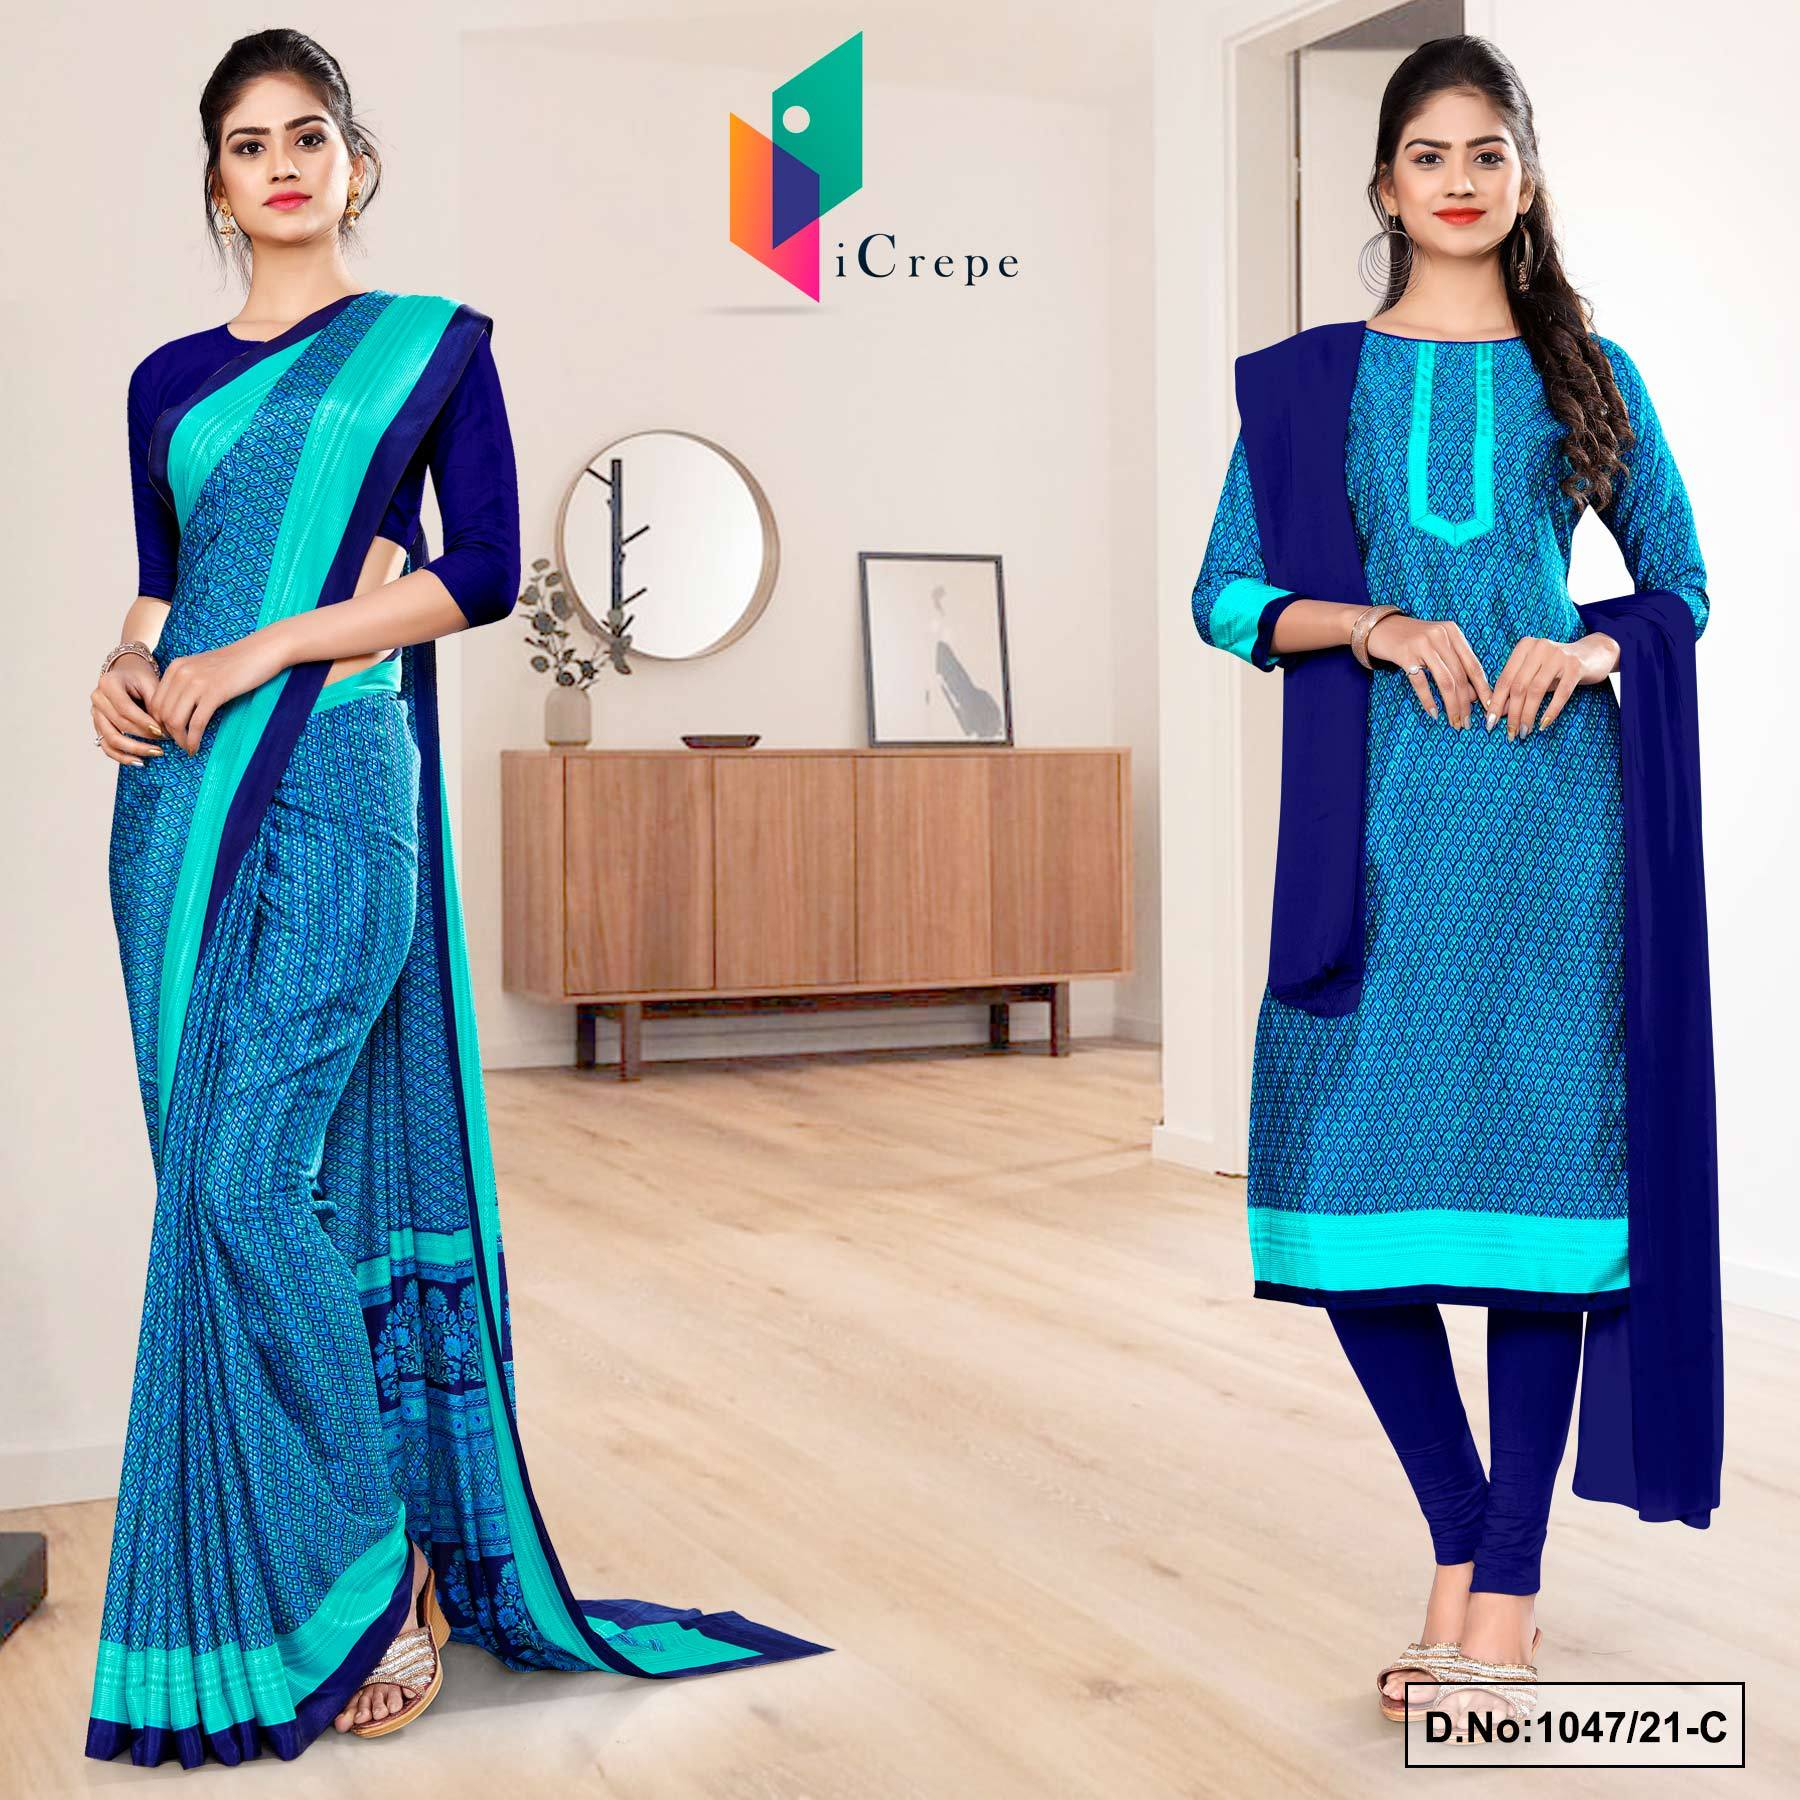 Navy Blue Sea Green Small Print Premium Italian Silk Crepe Uniform Saree Salwar Combo for Institutions